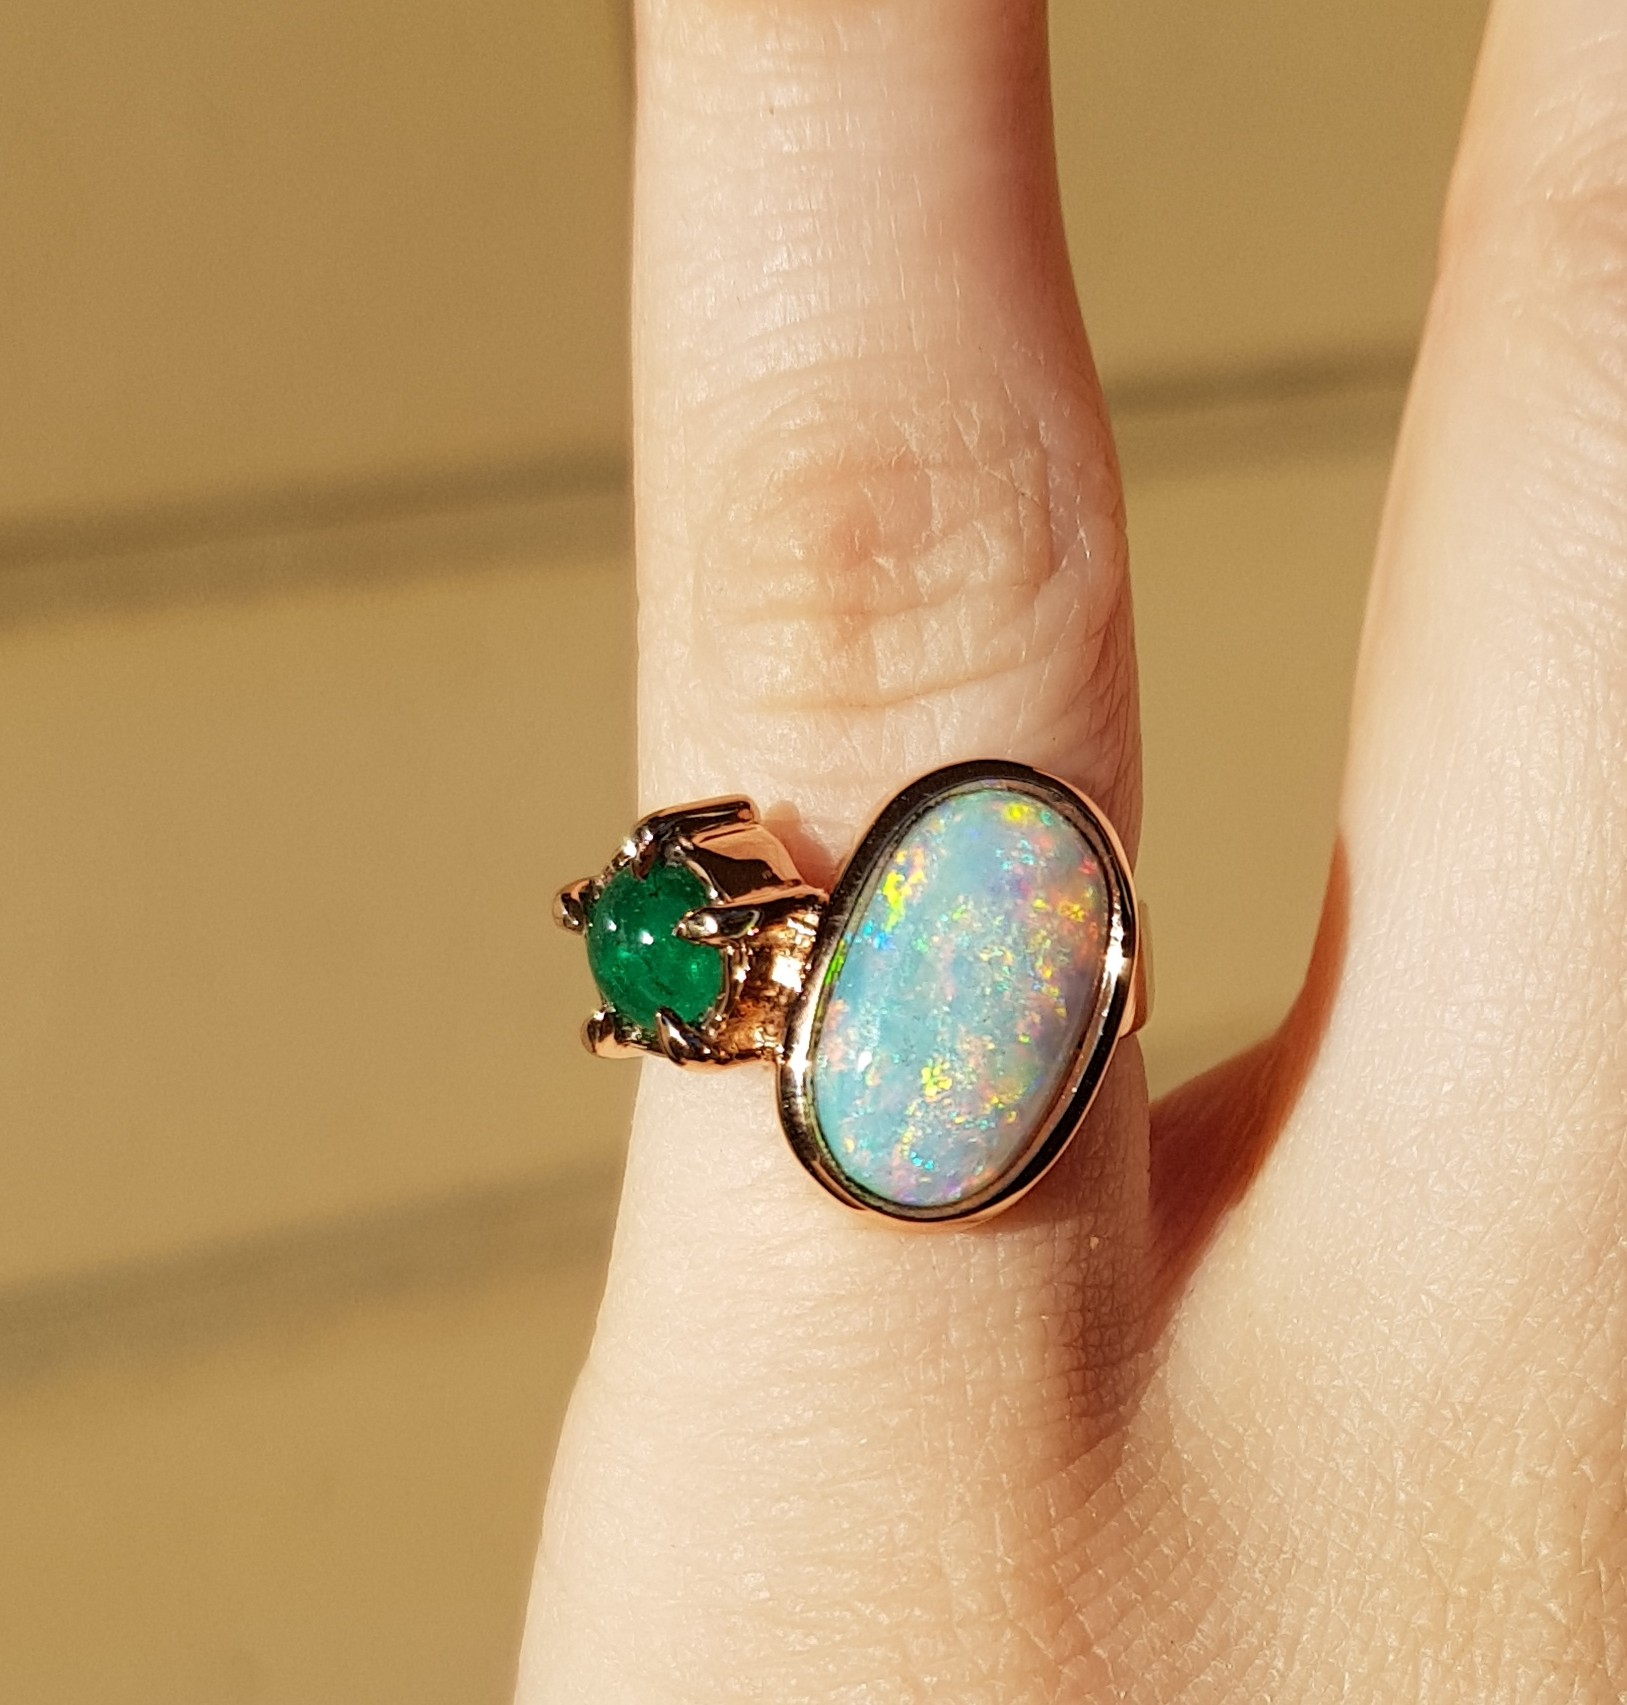 Engagement Ring - Australian Opal, Emerald, 18ct Rose Gold